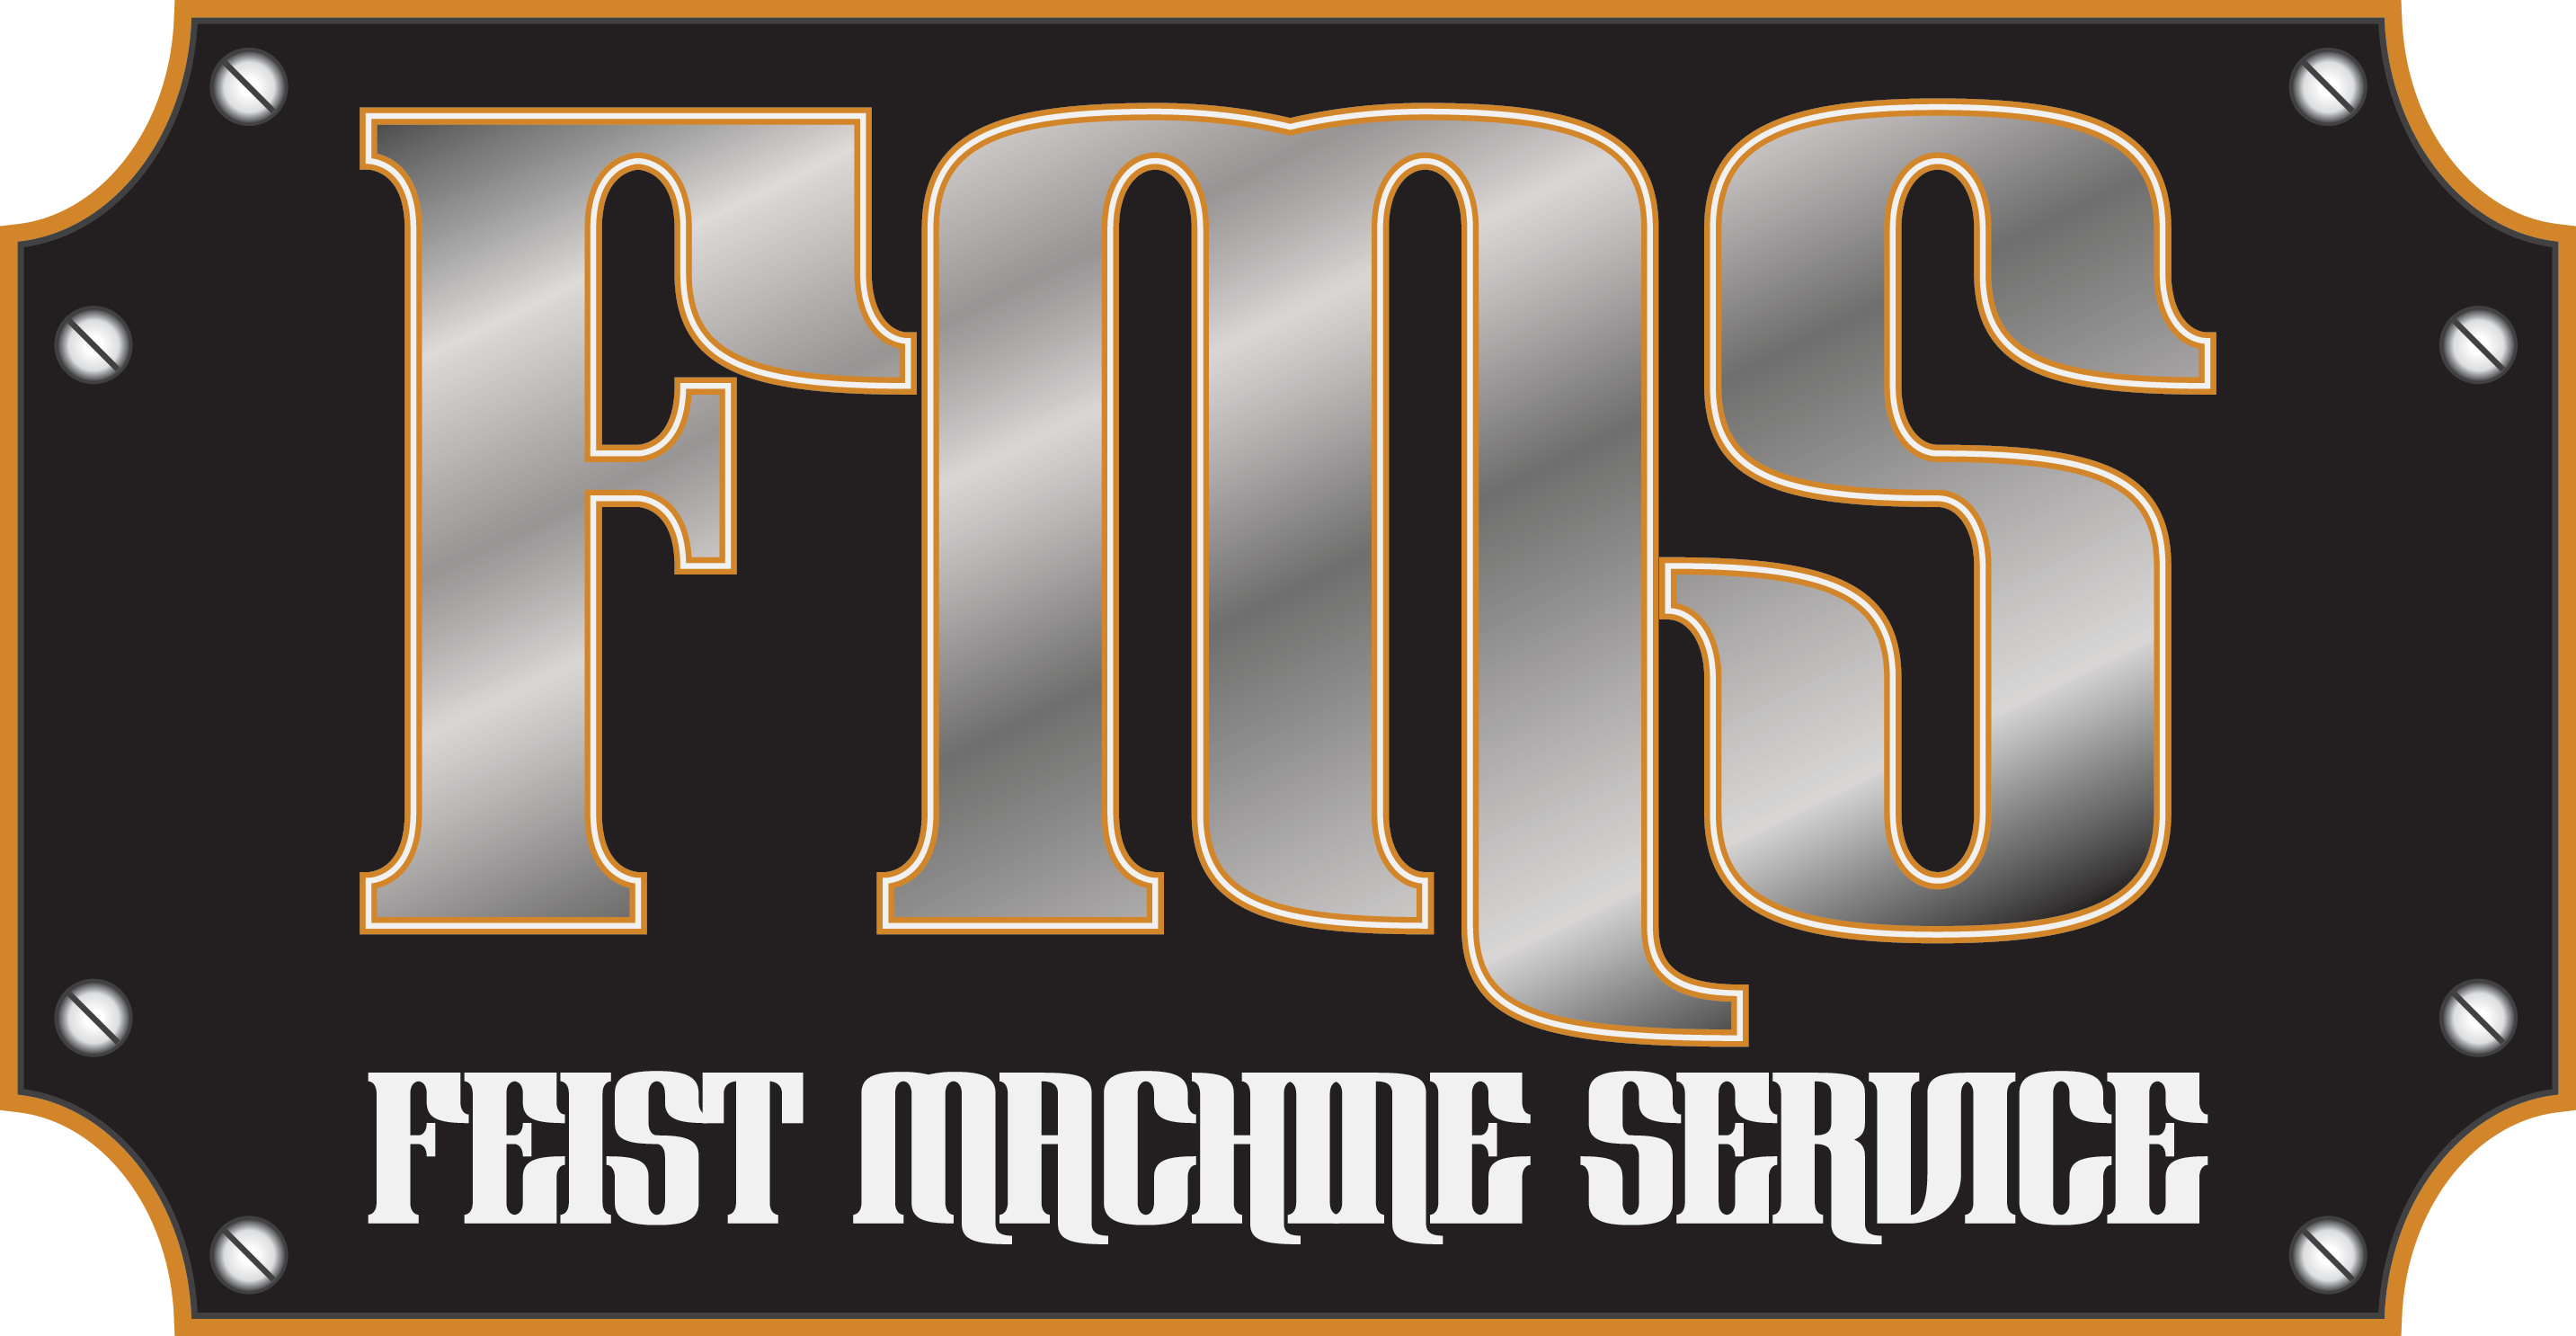 Feist Machine Service